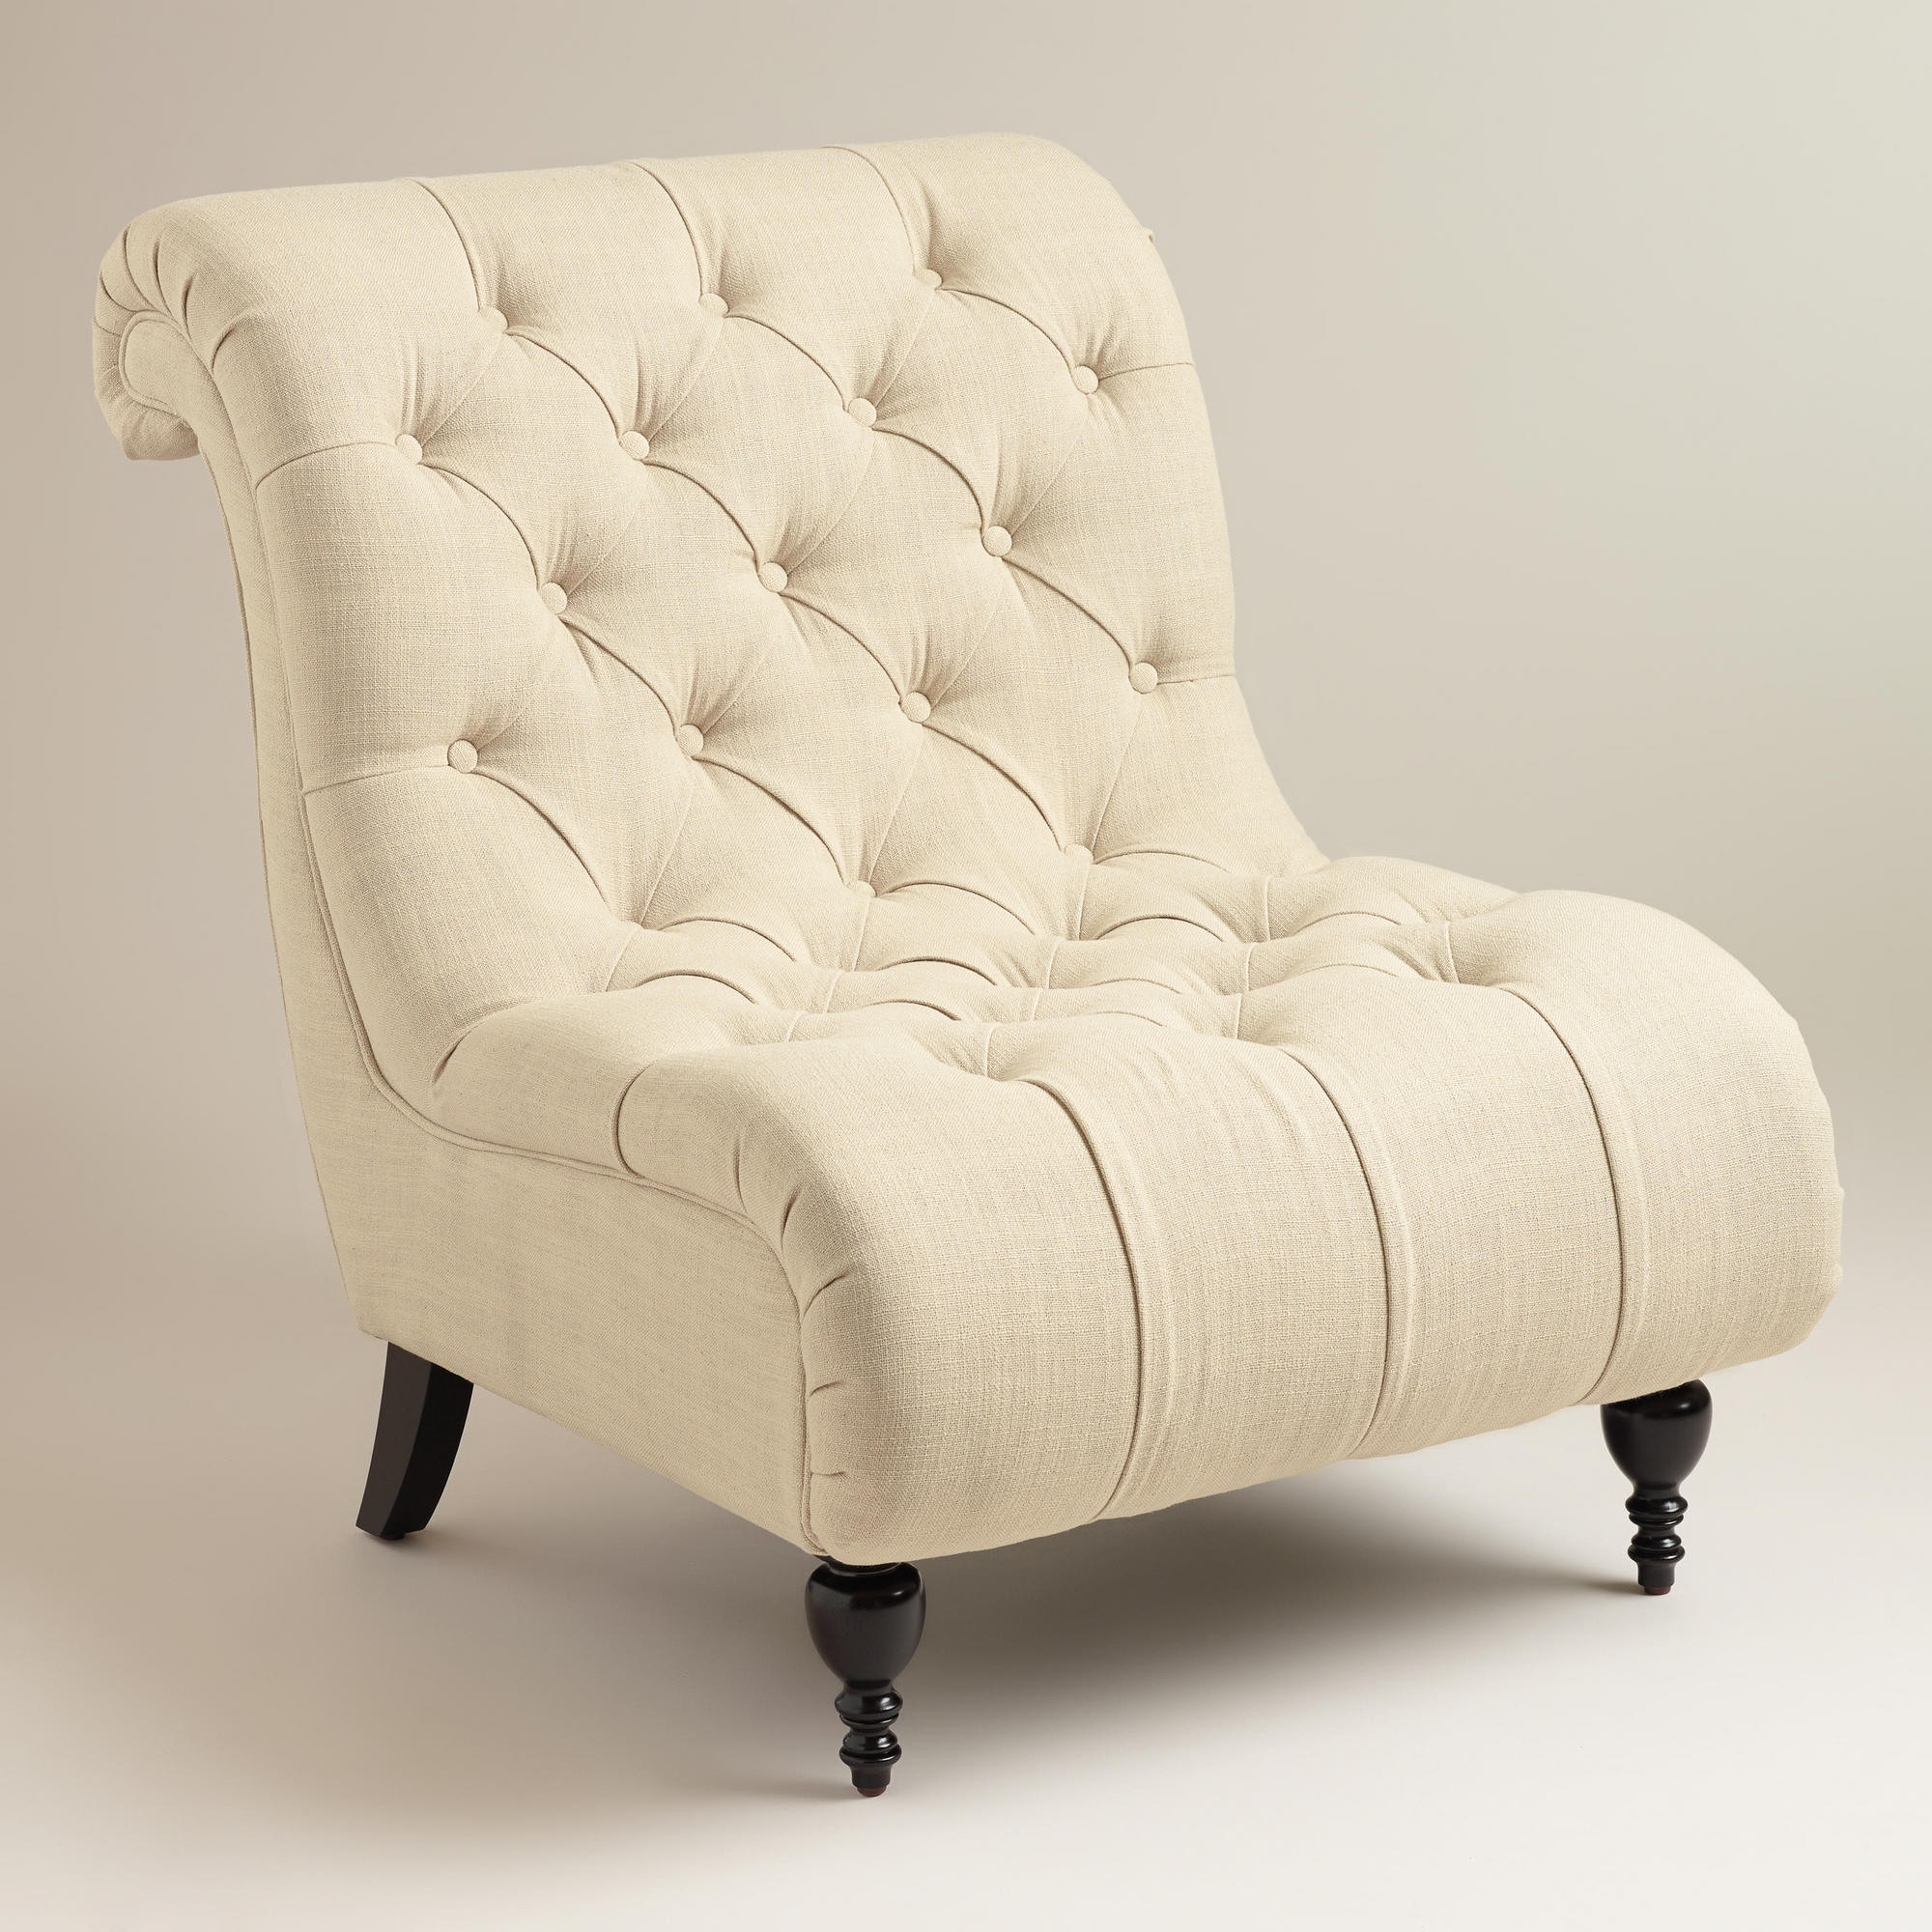 Decor Look Alikes | World Market Linen Tufted Devon Slipper Chair